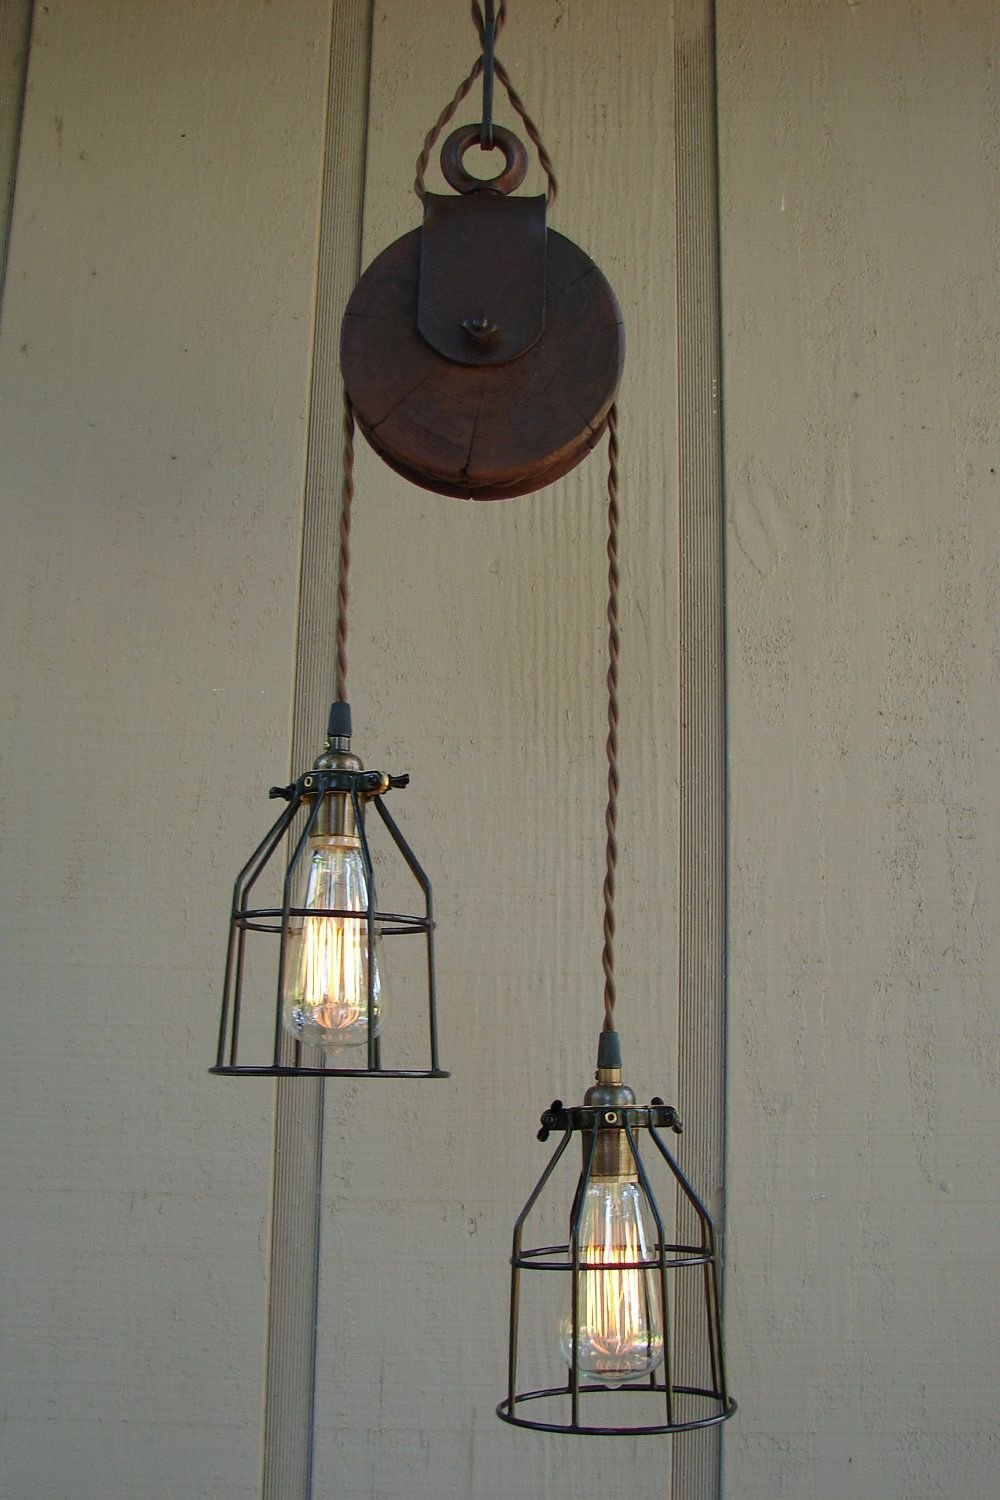 Reserved Diane Upcycled Farm Pulley Lighting Pendant Extendable Dining Table Ideas